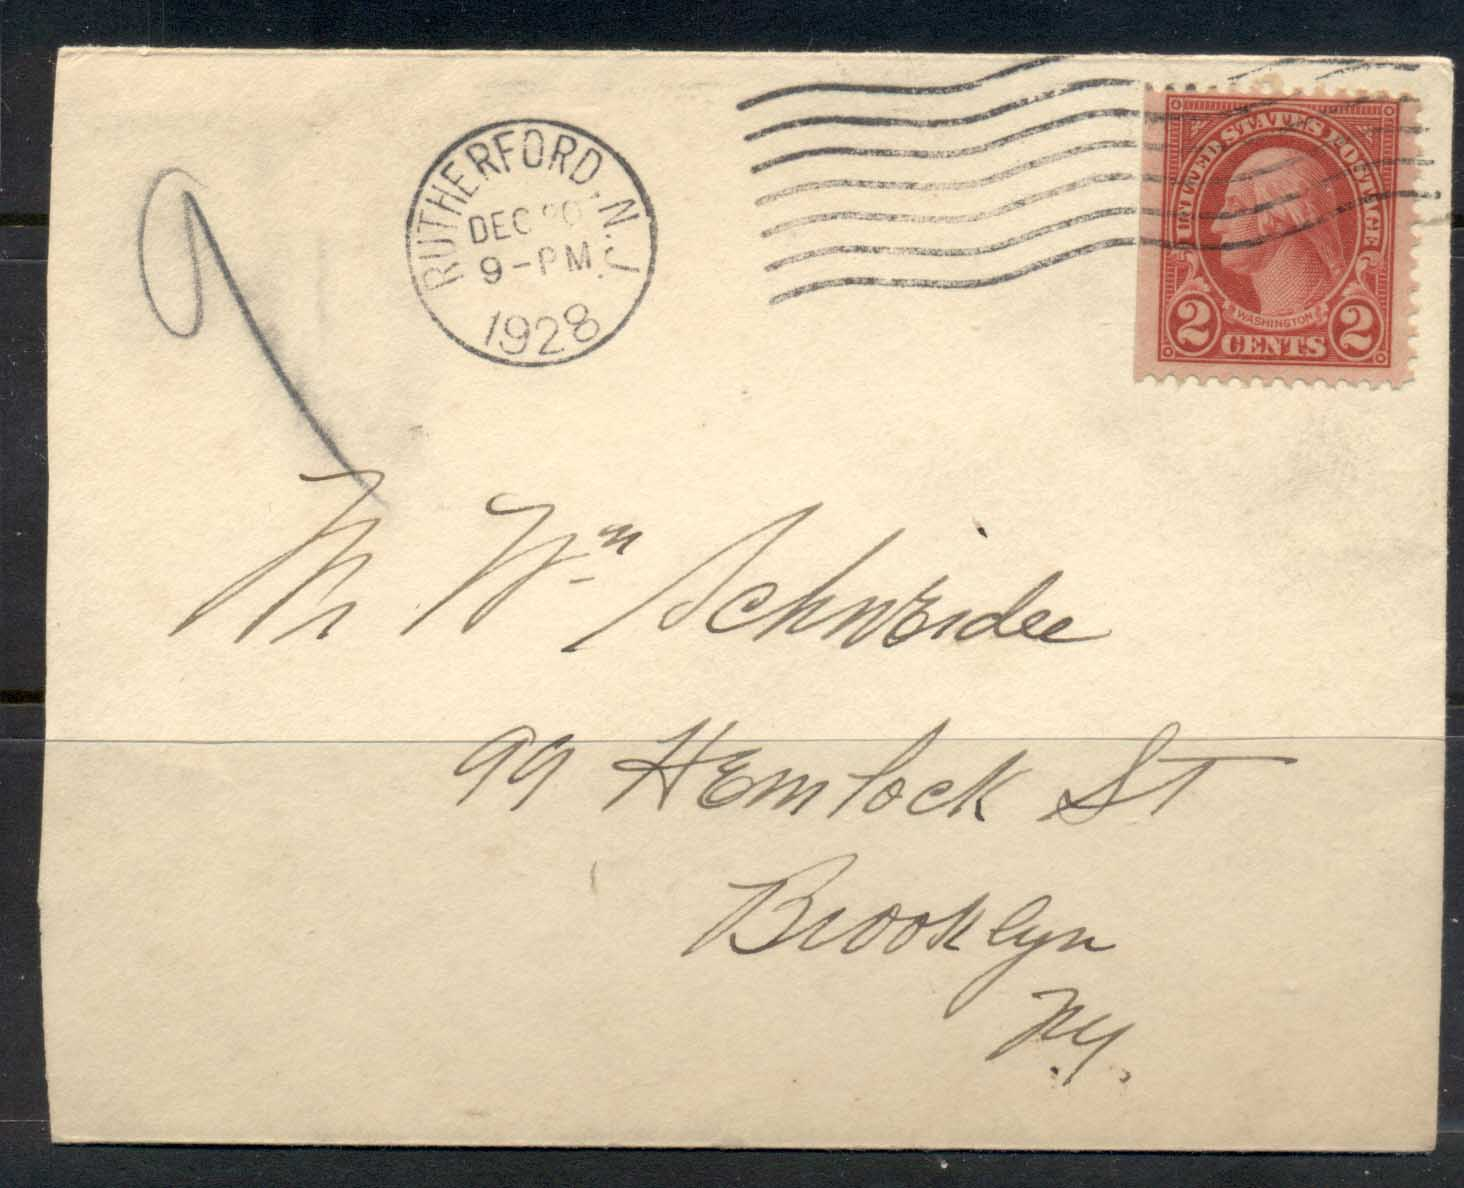 USA 1922-38 Fourth Bureau Washington 2c Rutherford 1928 cover